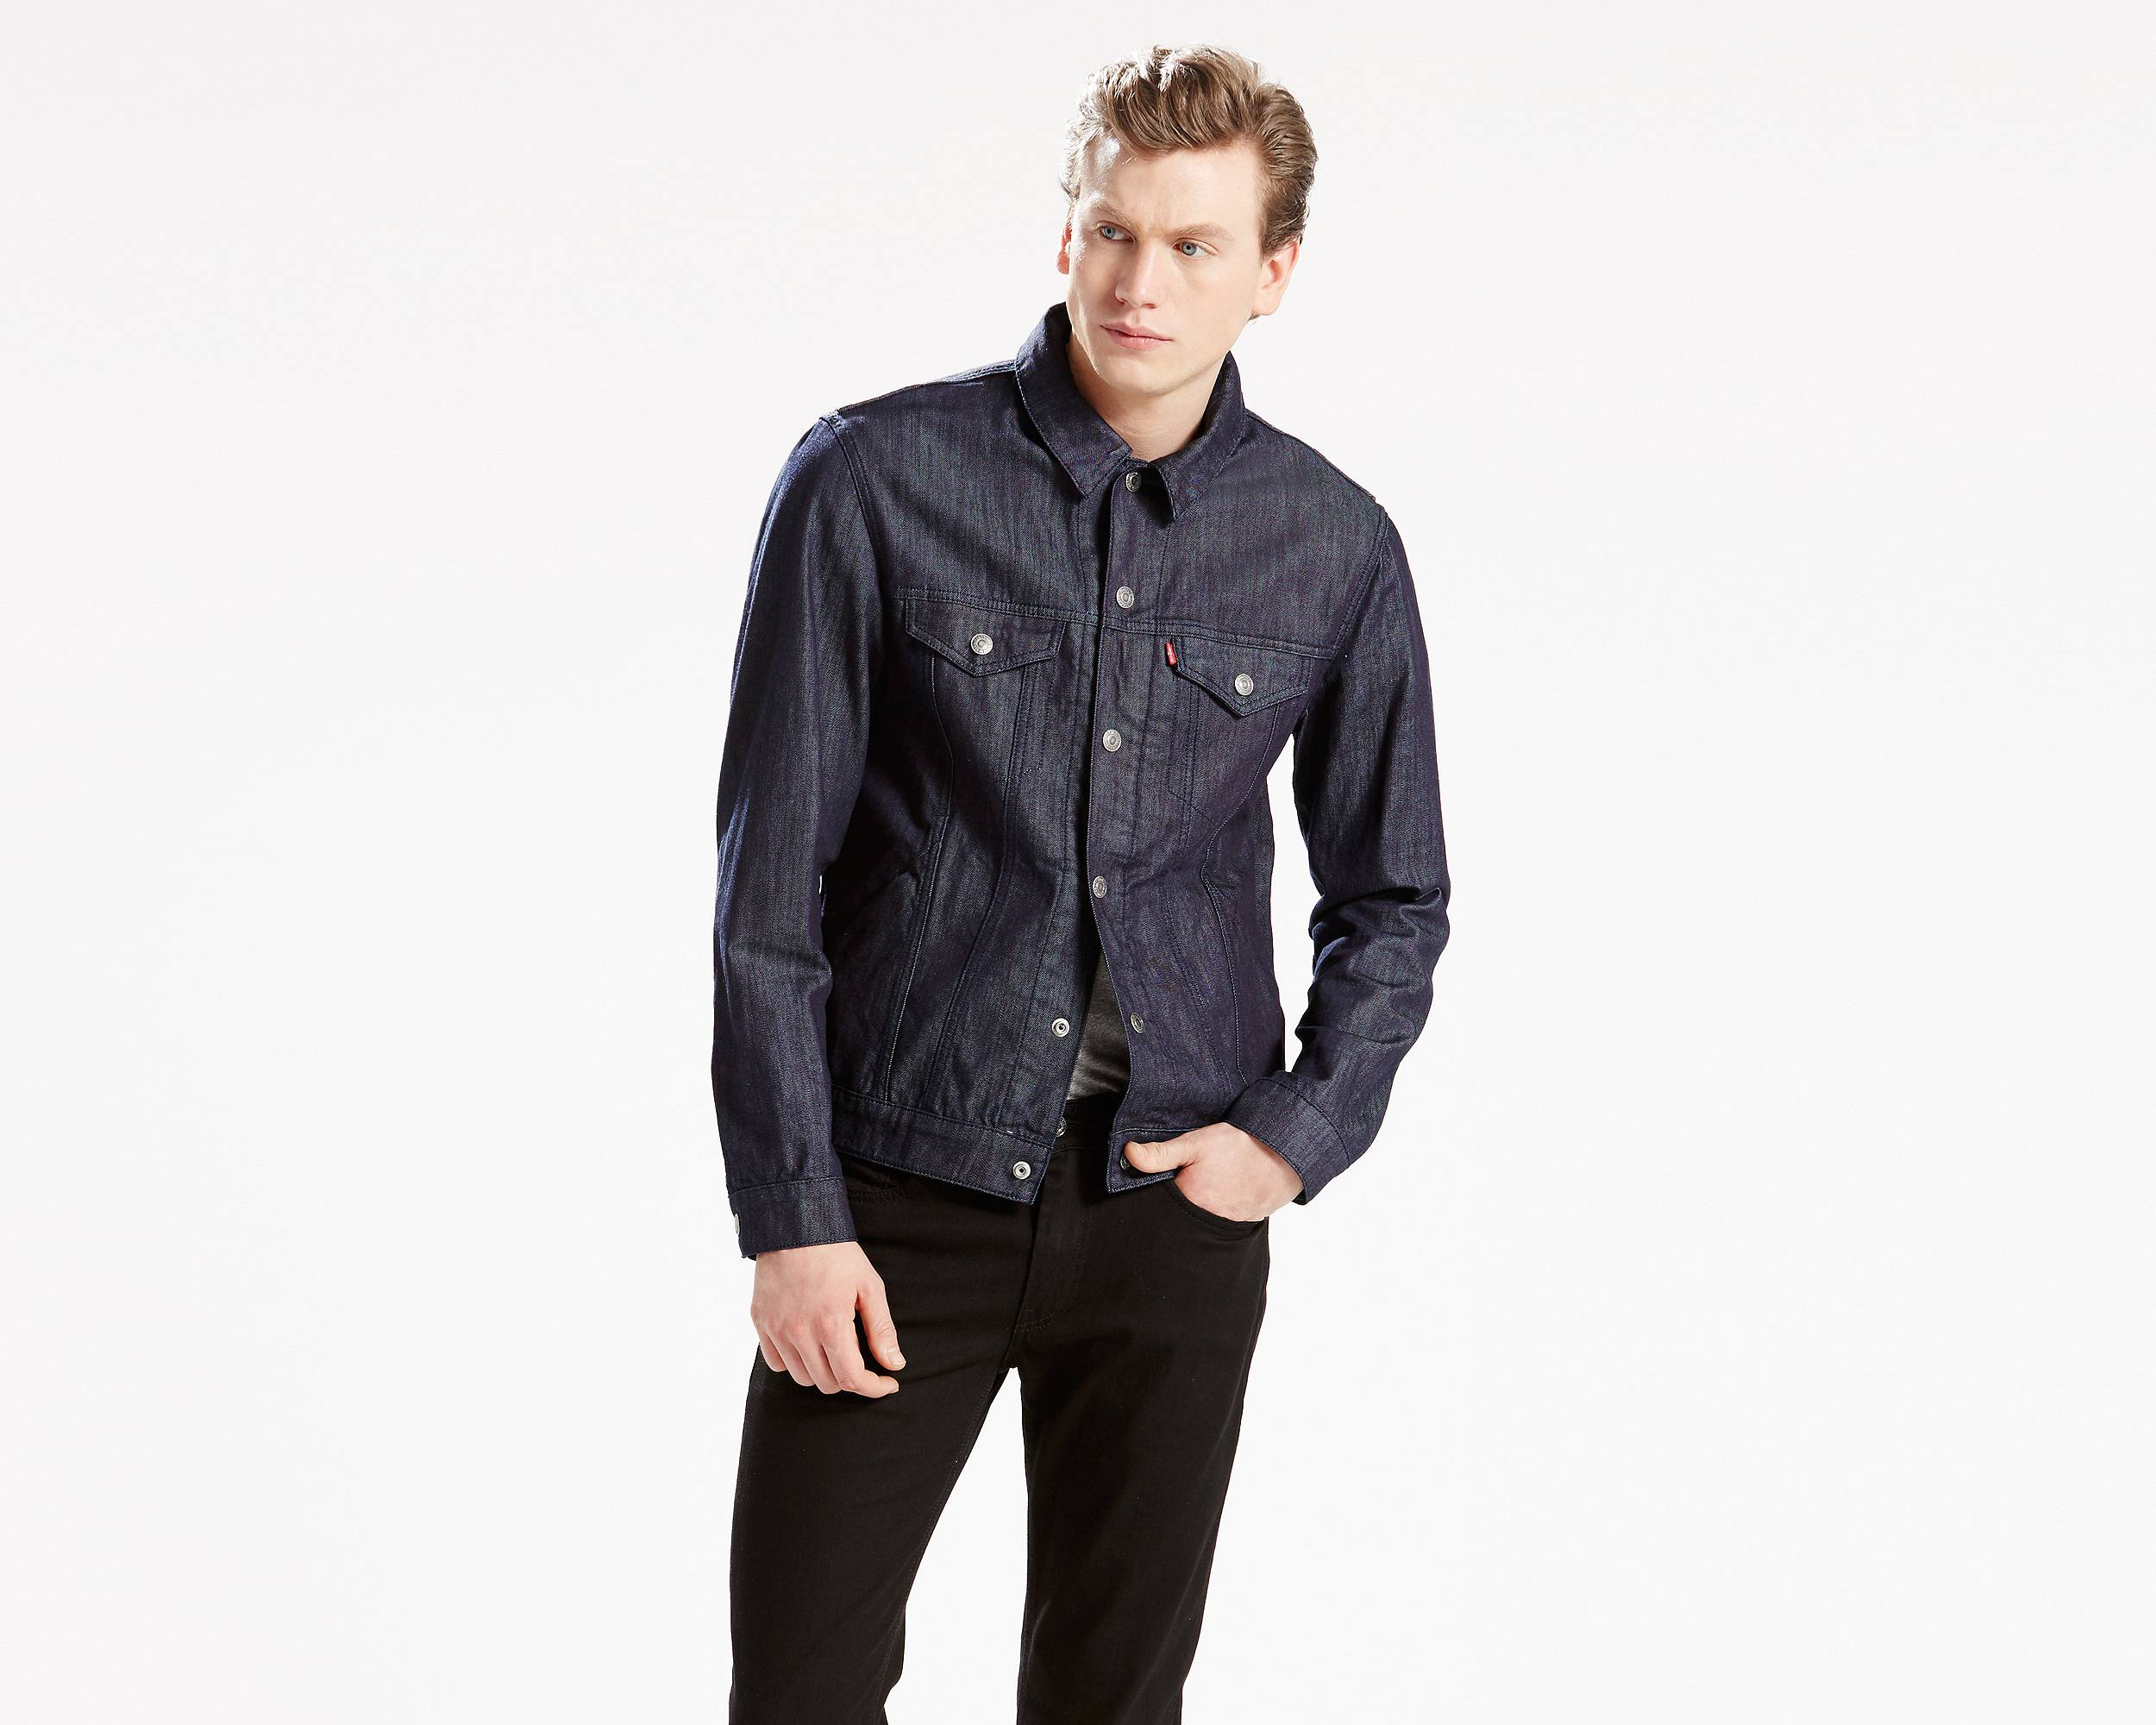 Denim jacket men's sale